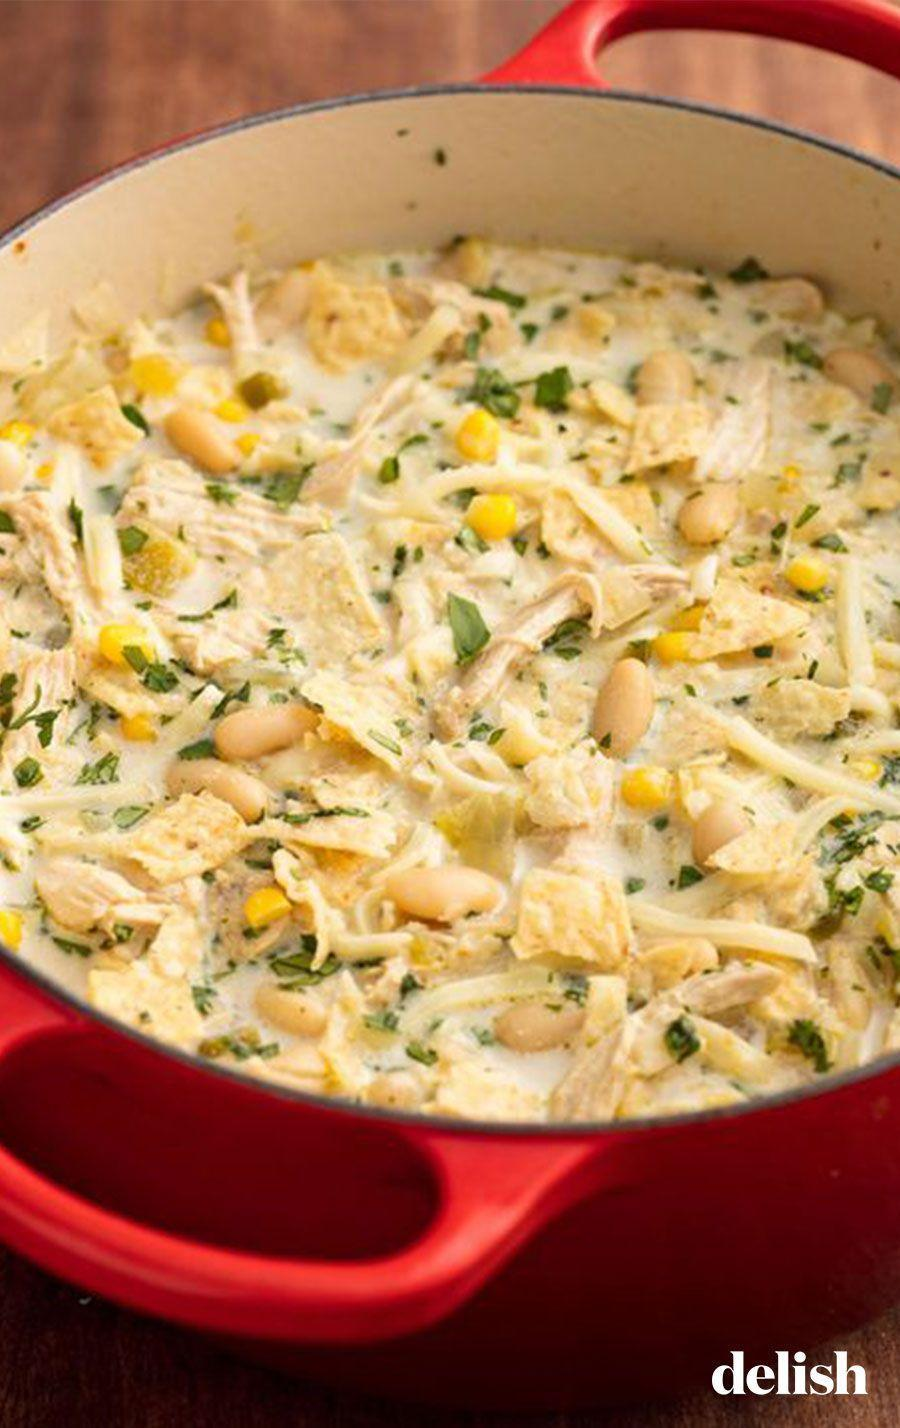 """<p>When we're craving something hearty and healthy, this chicken chili immediately jumps to mind. </p><p>Get the recipe from <a href=""""https://www.delish.com/cooking/recipe-ideas/recipes/a57946/easy-white-chicken-chili-recipe/"""" rel=""""nofollow noopener"""" target=""""_blank"""" data-ylk=""""slk:Delish"""" class=""""link rapid-noclick-resp"""">Delish</a>.</p>"""